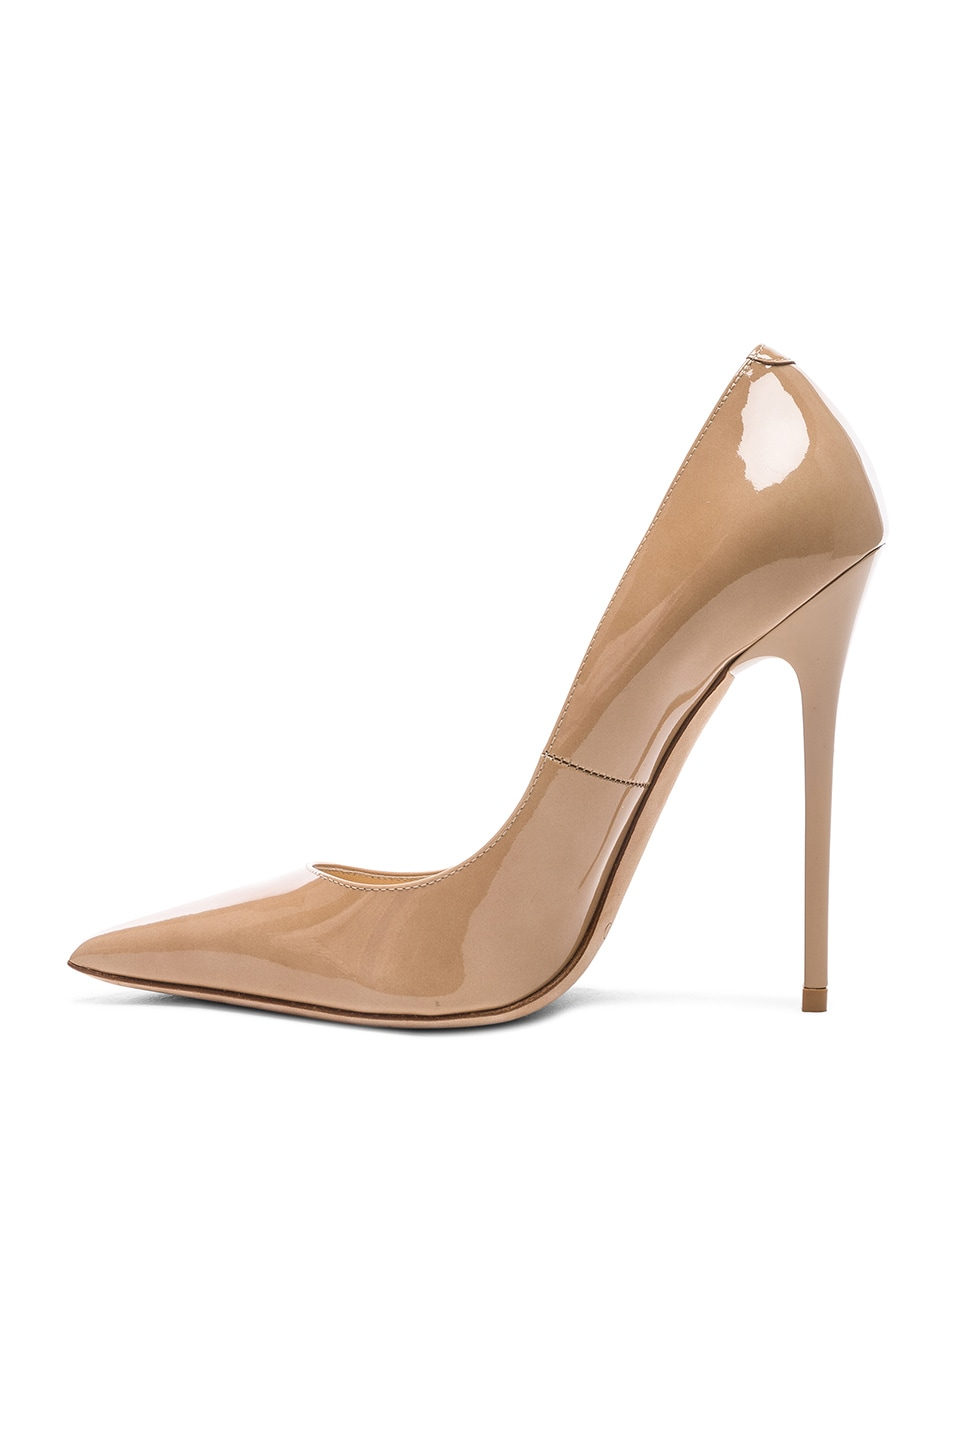 Image 5 of Jimmy Choo Anouk 120 Patent Leather Pump in Nude